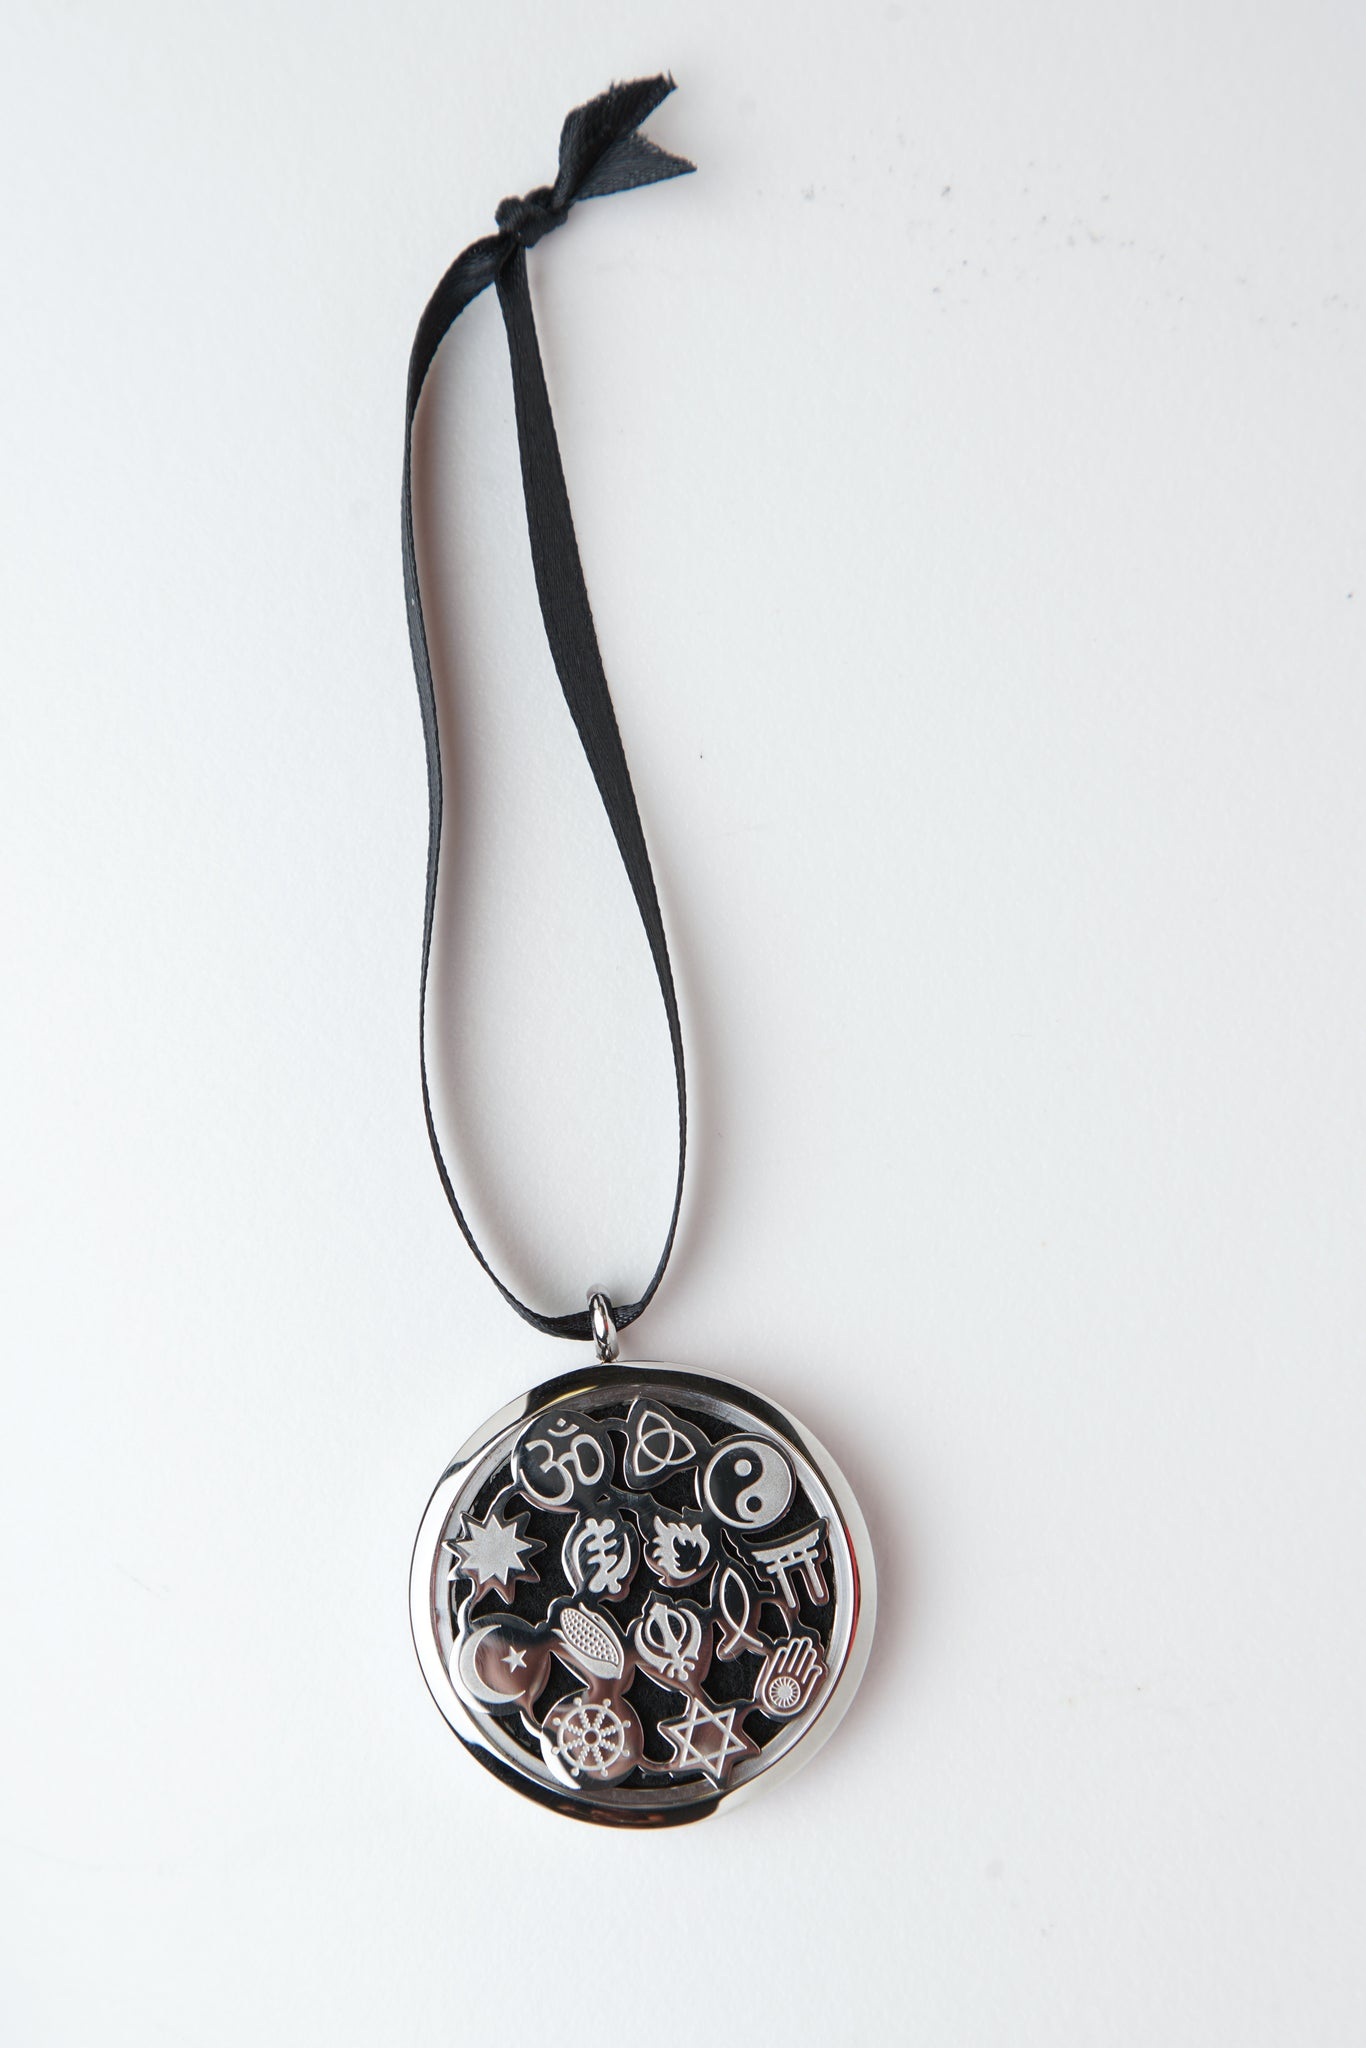 Silver Tone Tolerance Stainless Steel Hanging Diffuser